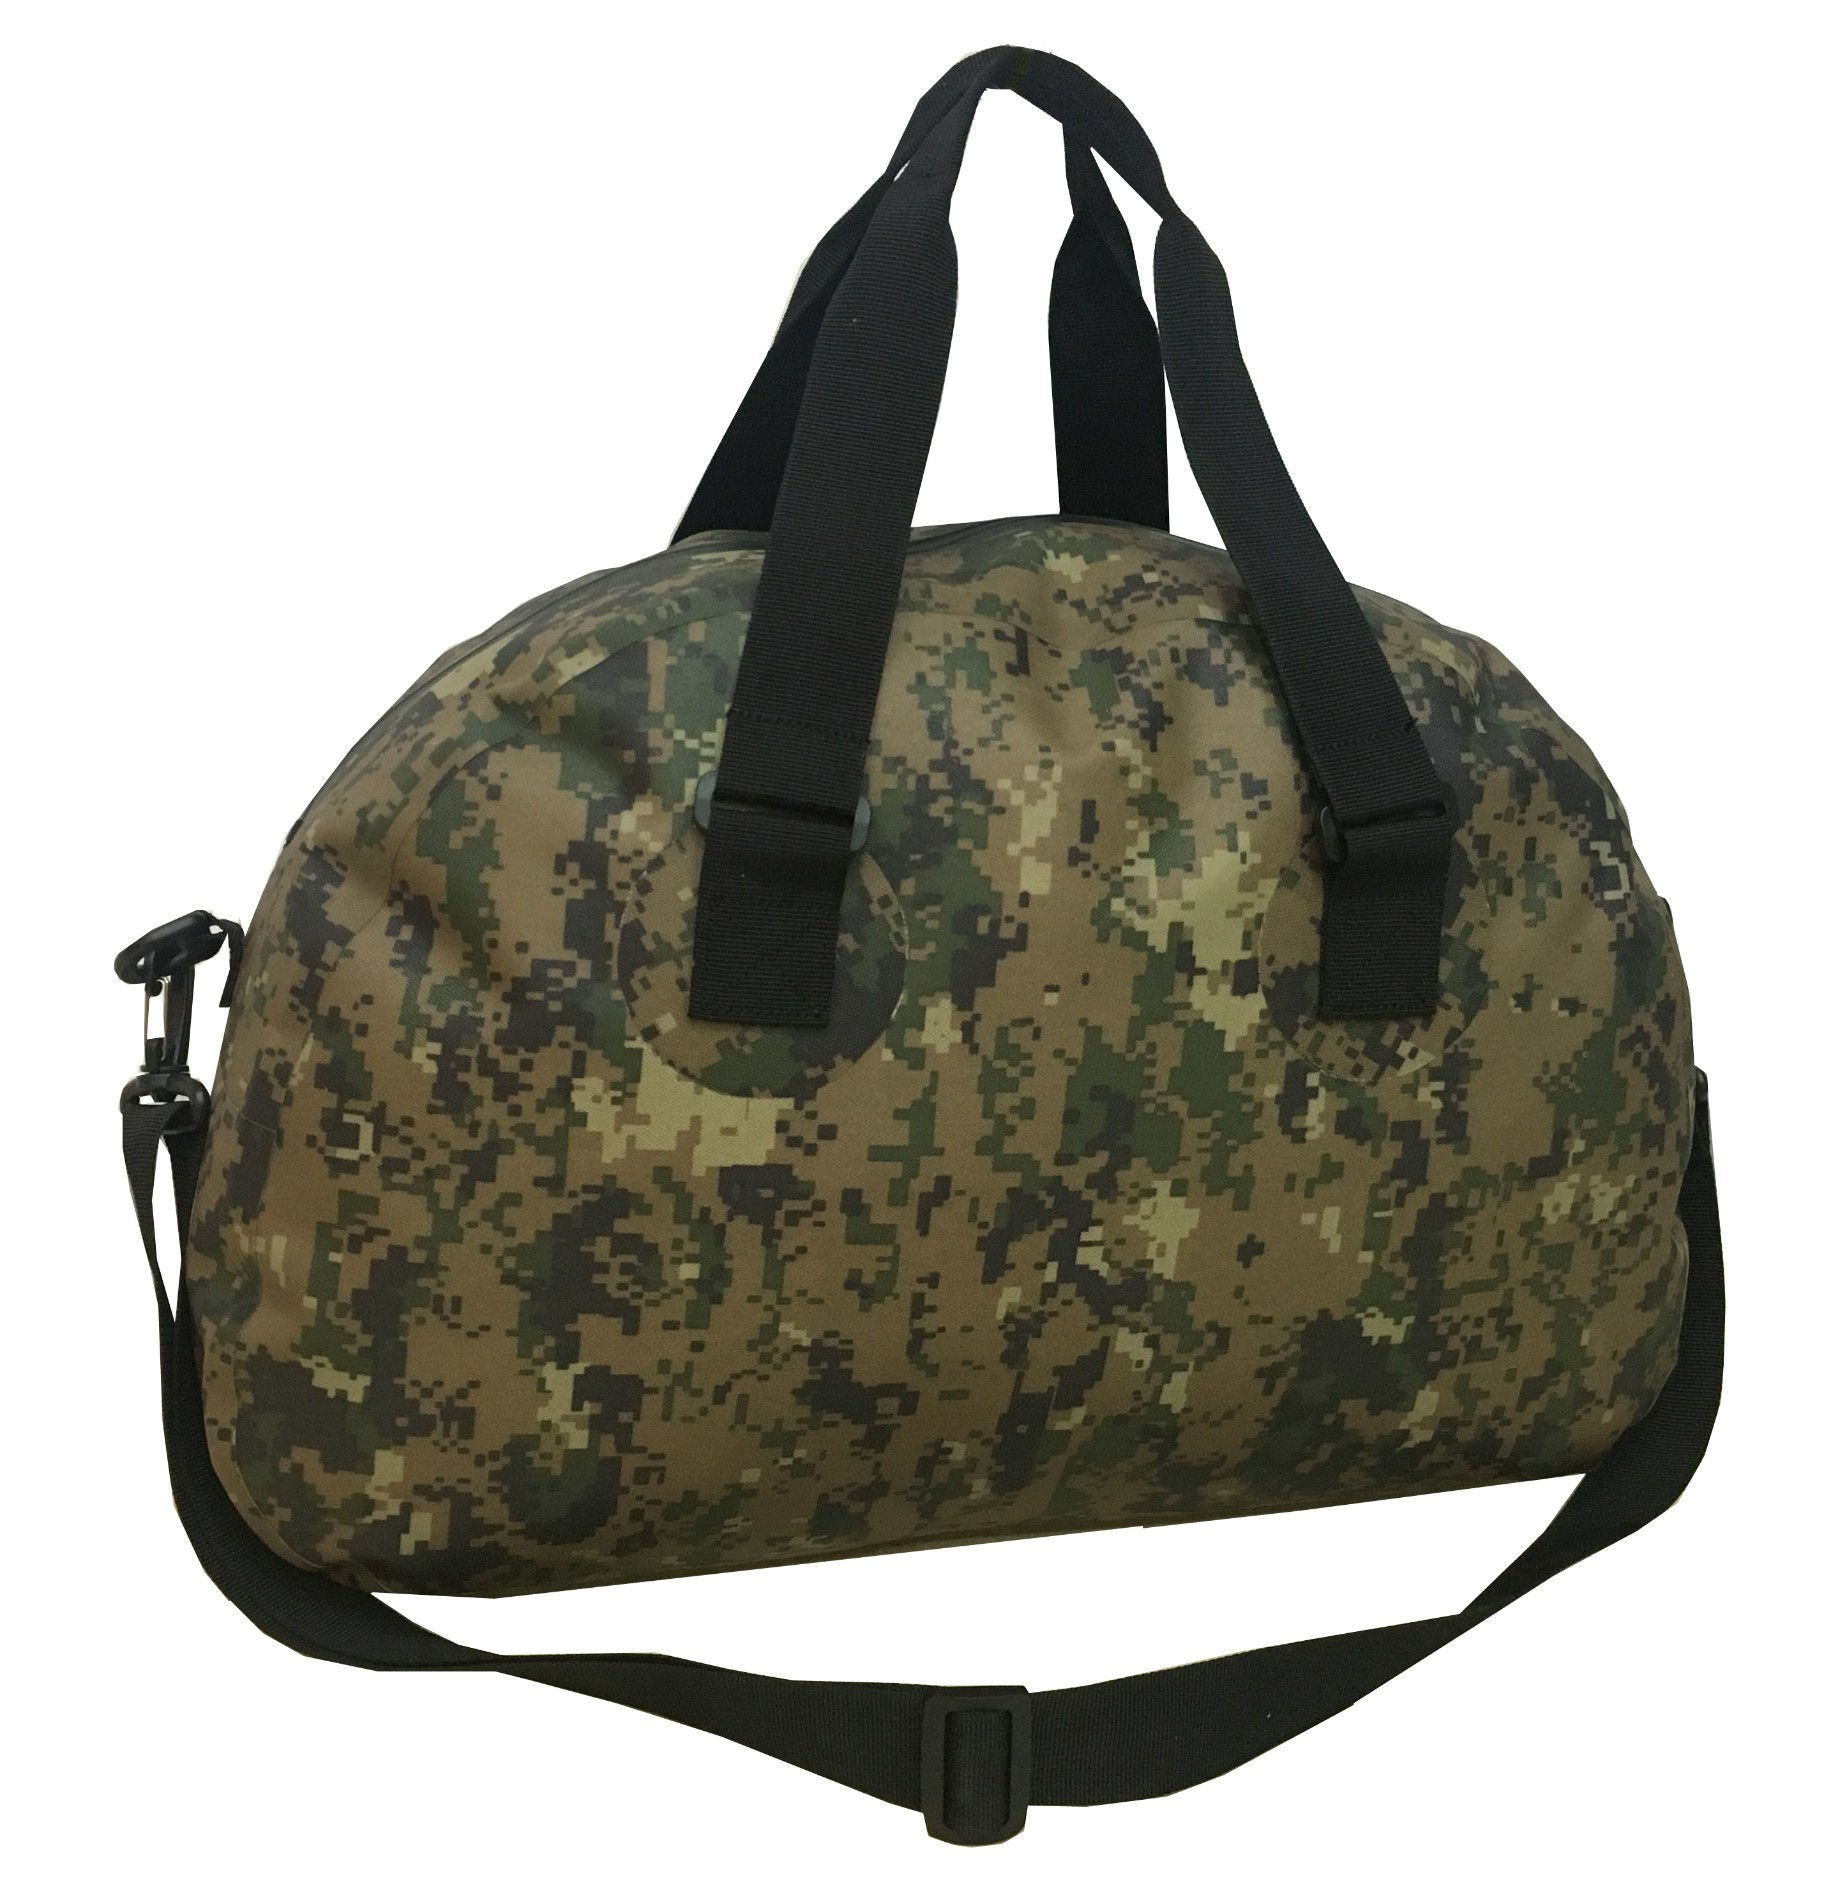 Camo Dry Duffel Bag Sale Manufacturers, Camo Dry Duffel Bag Sale Factory, Supply Camo Dry Duffel Bag Sale